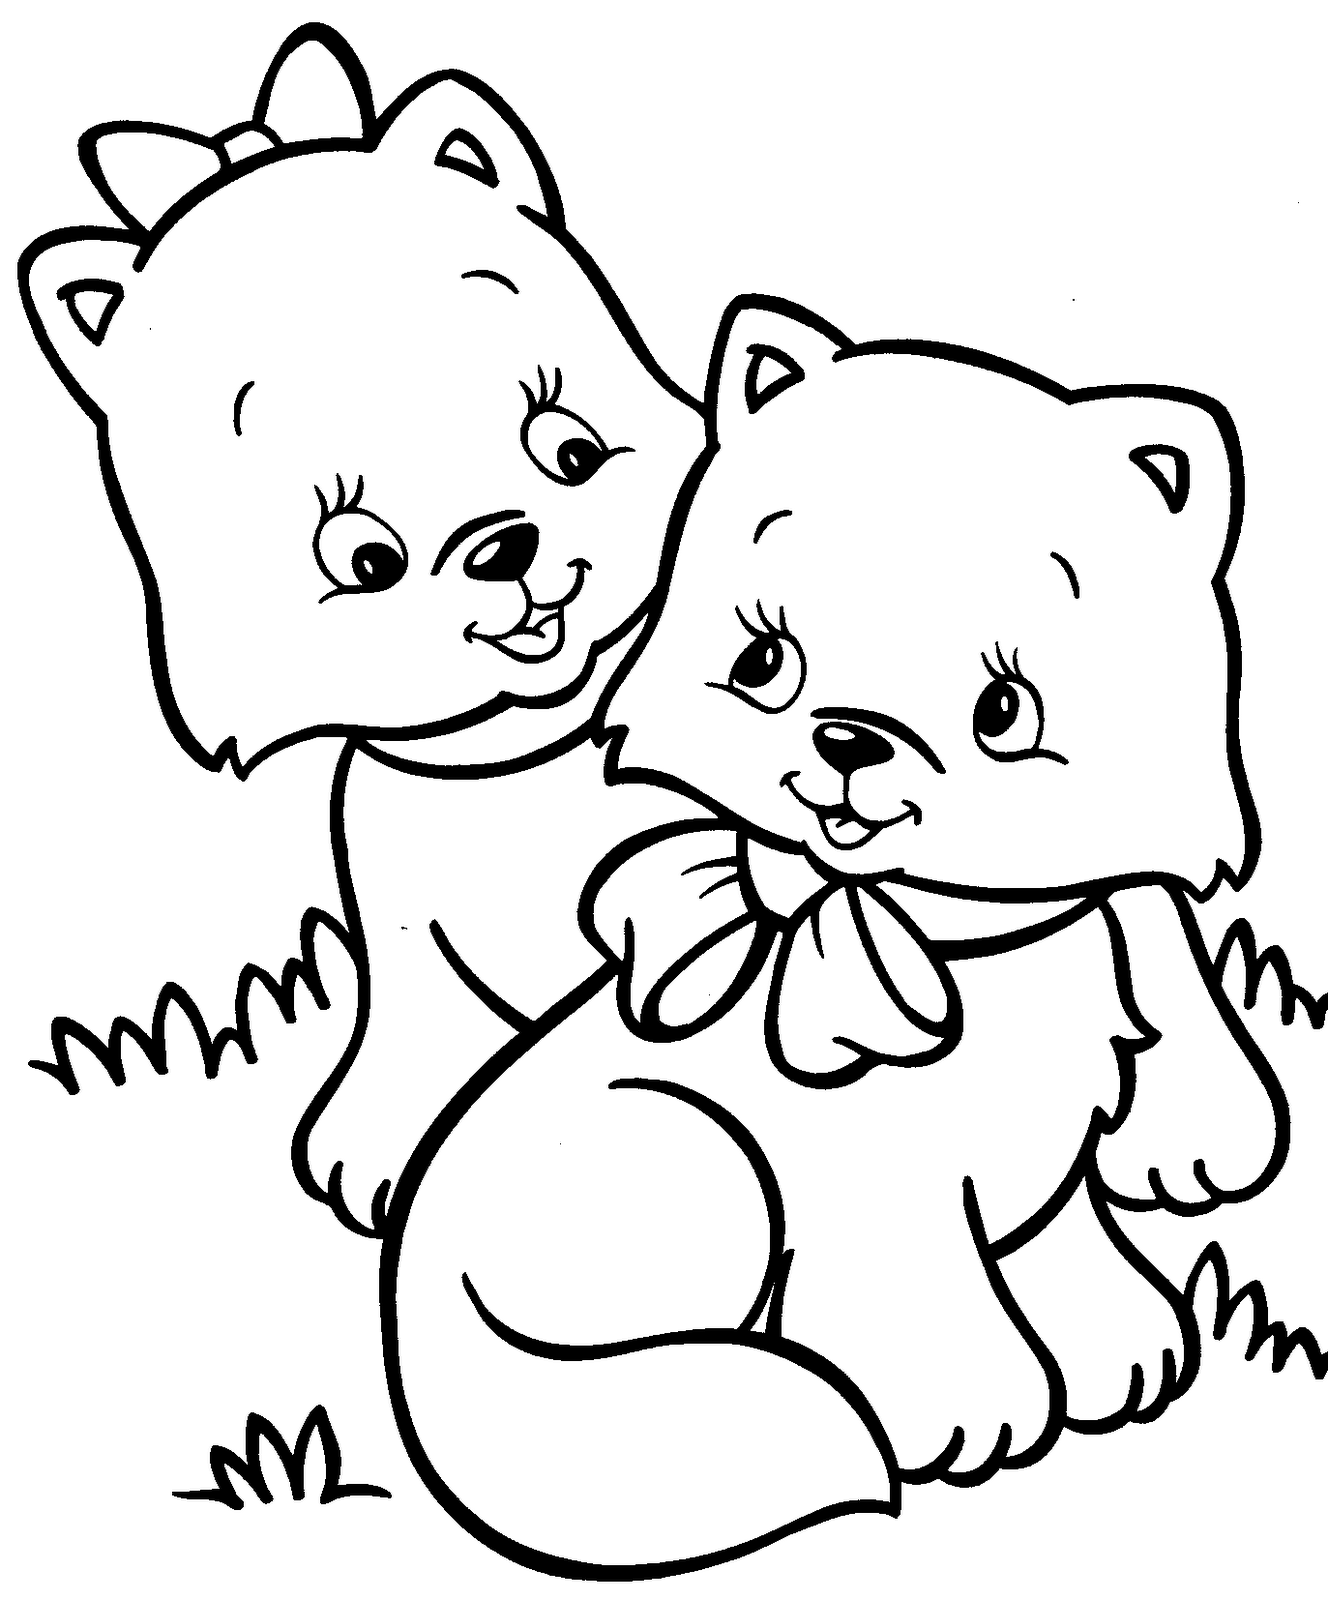 kittens coloring pages free printable kitten coloring pages for kids best pages kittens coloring